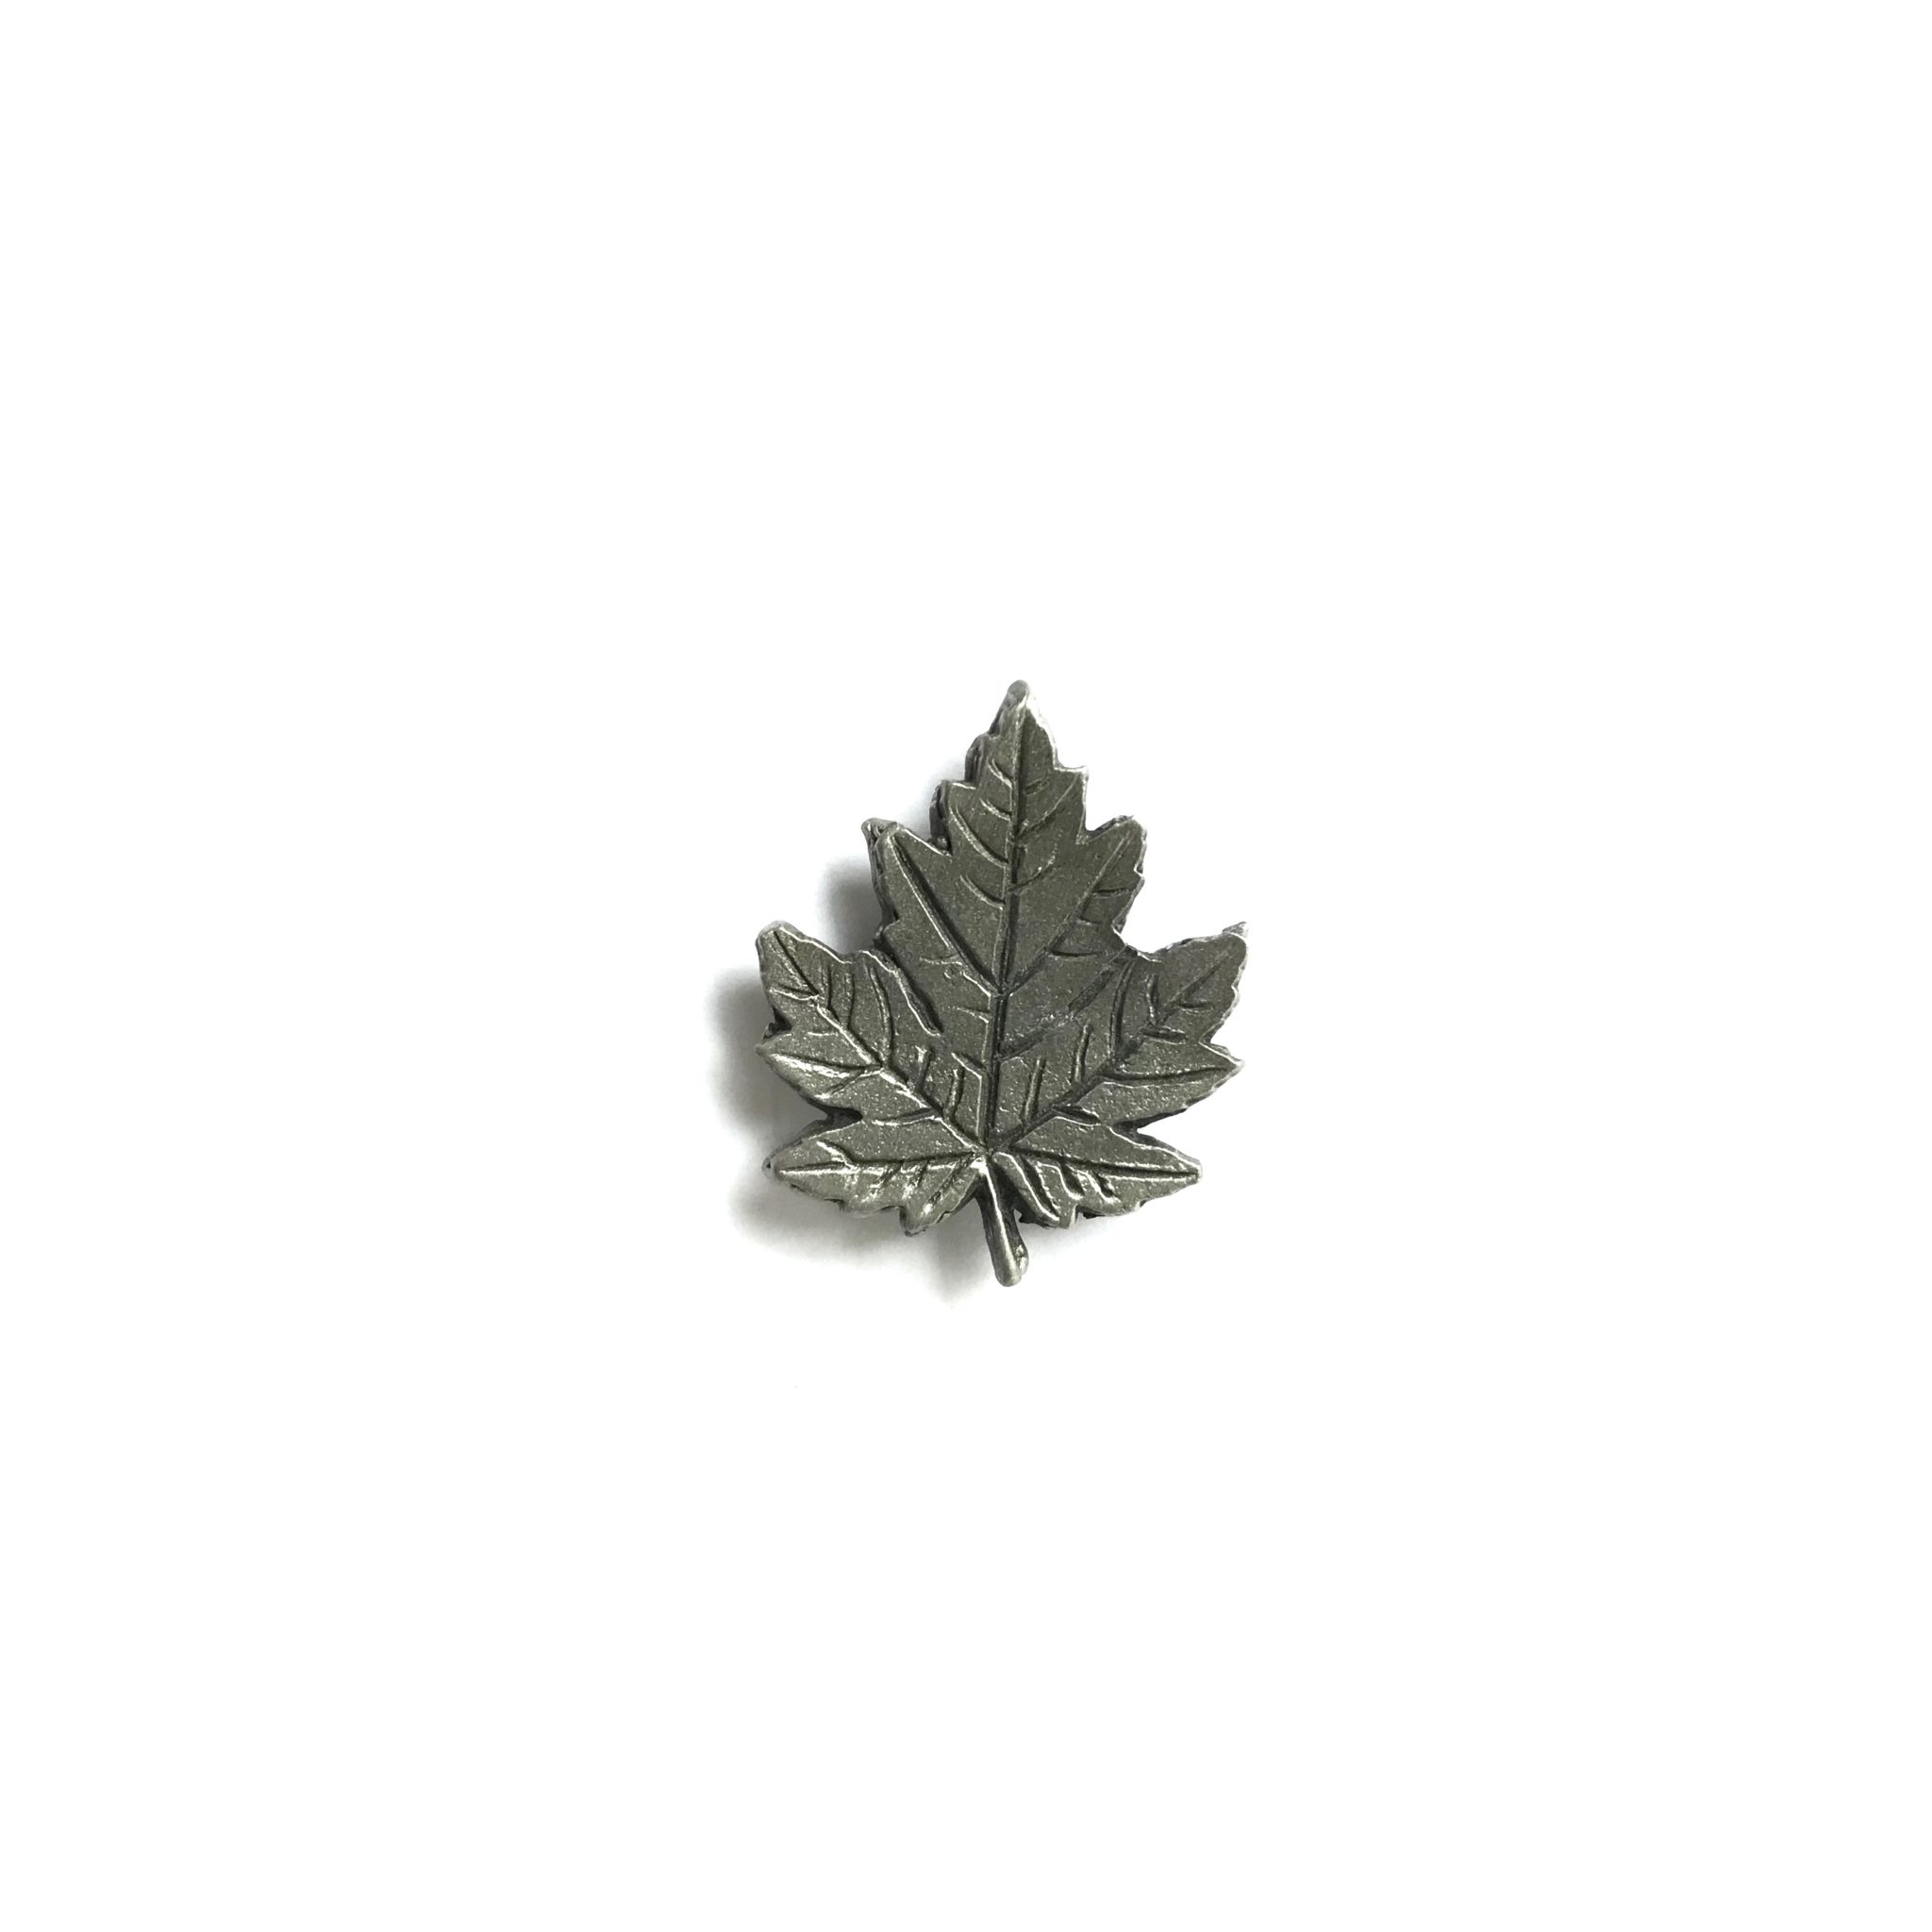 Big maple leaf